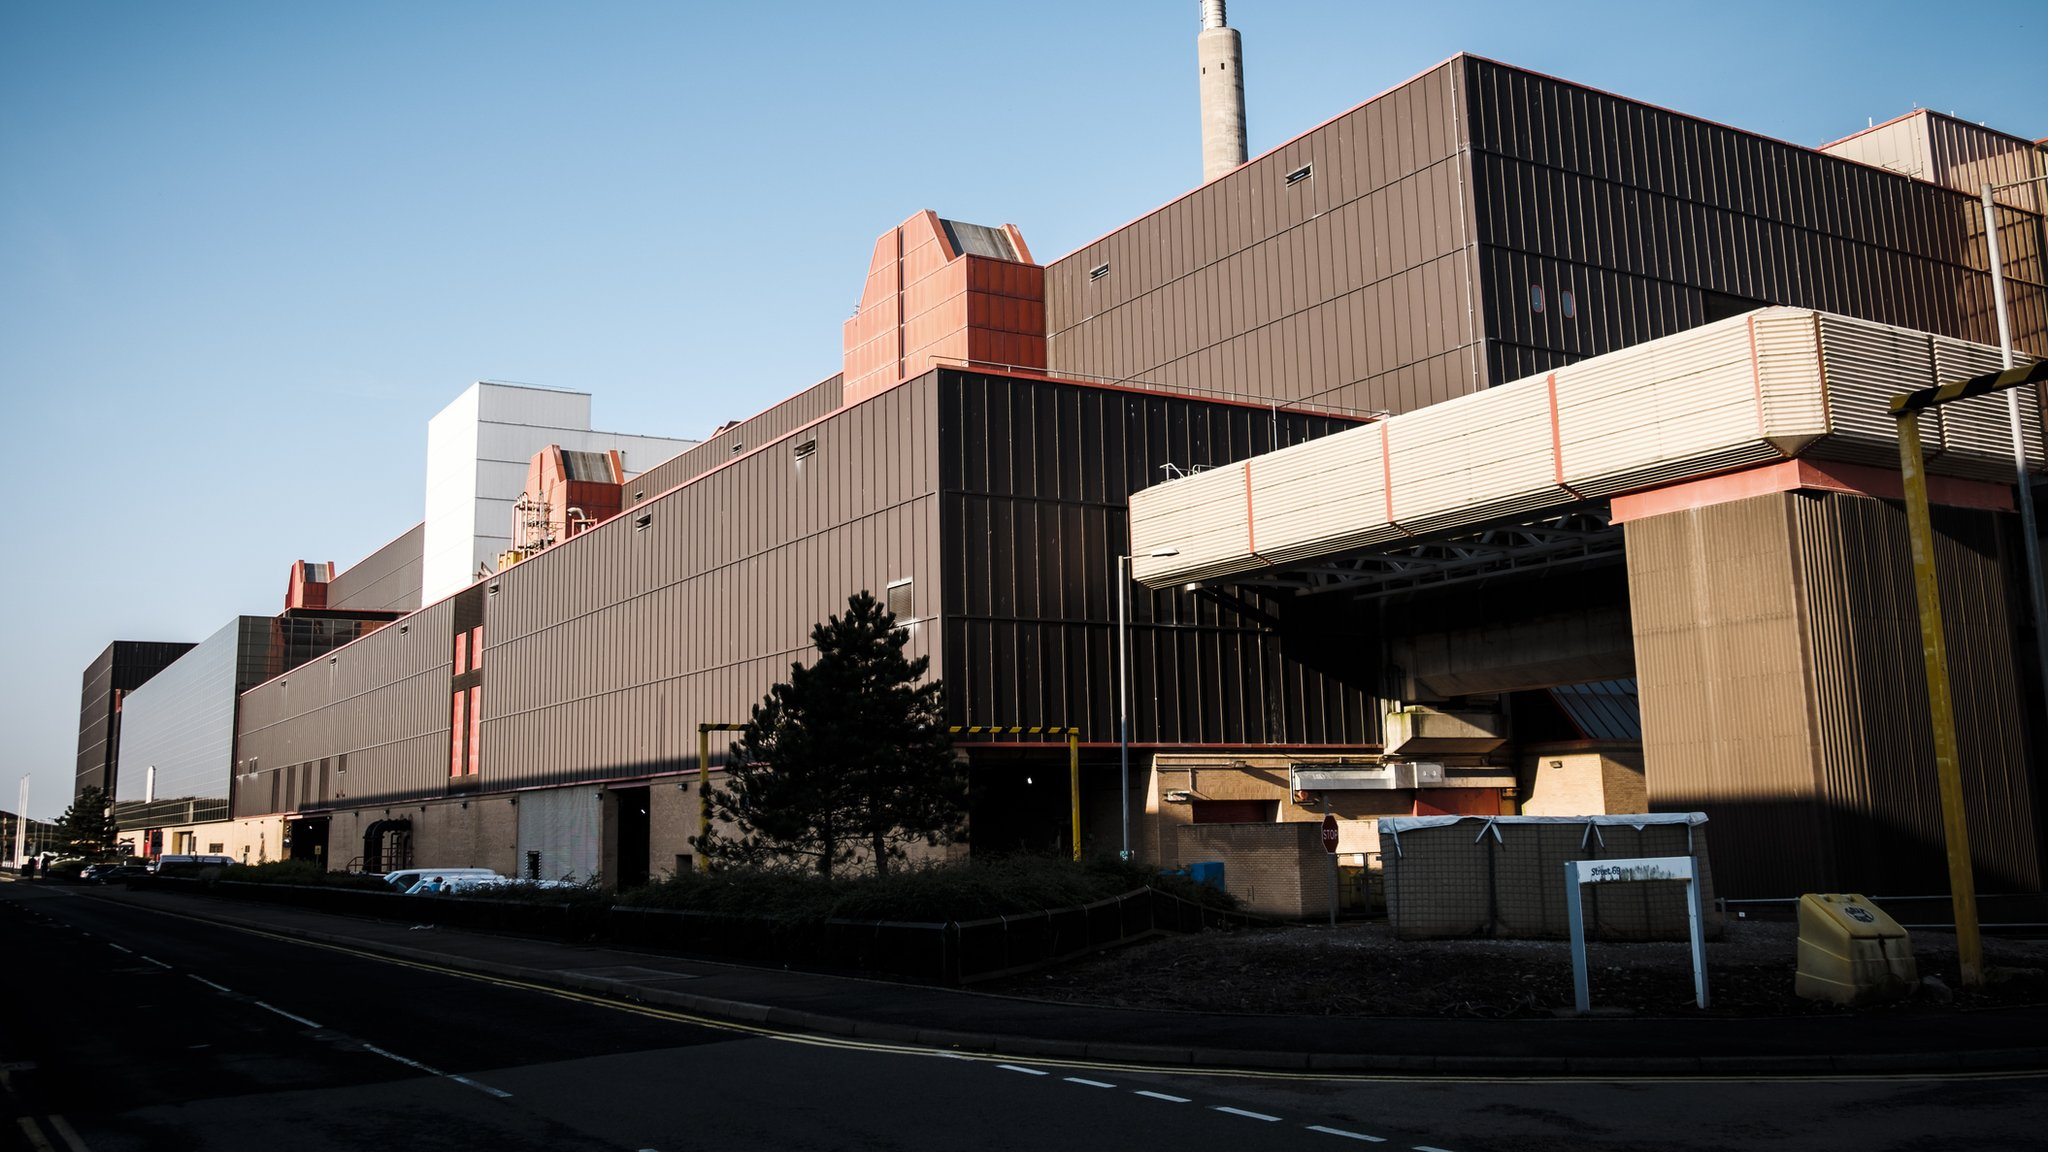 Commercial nuclear reprocessing ends at Sellafield site